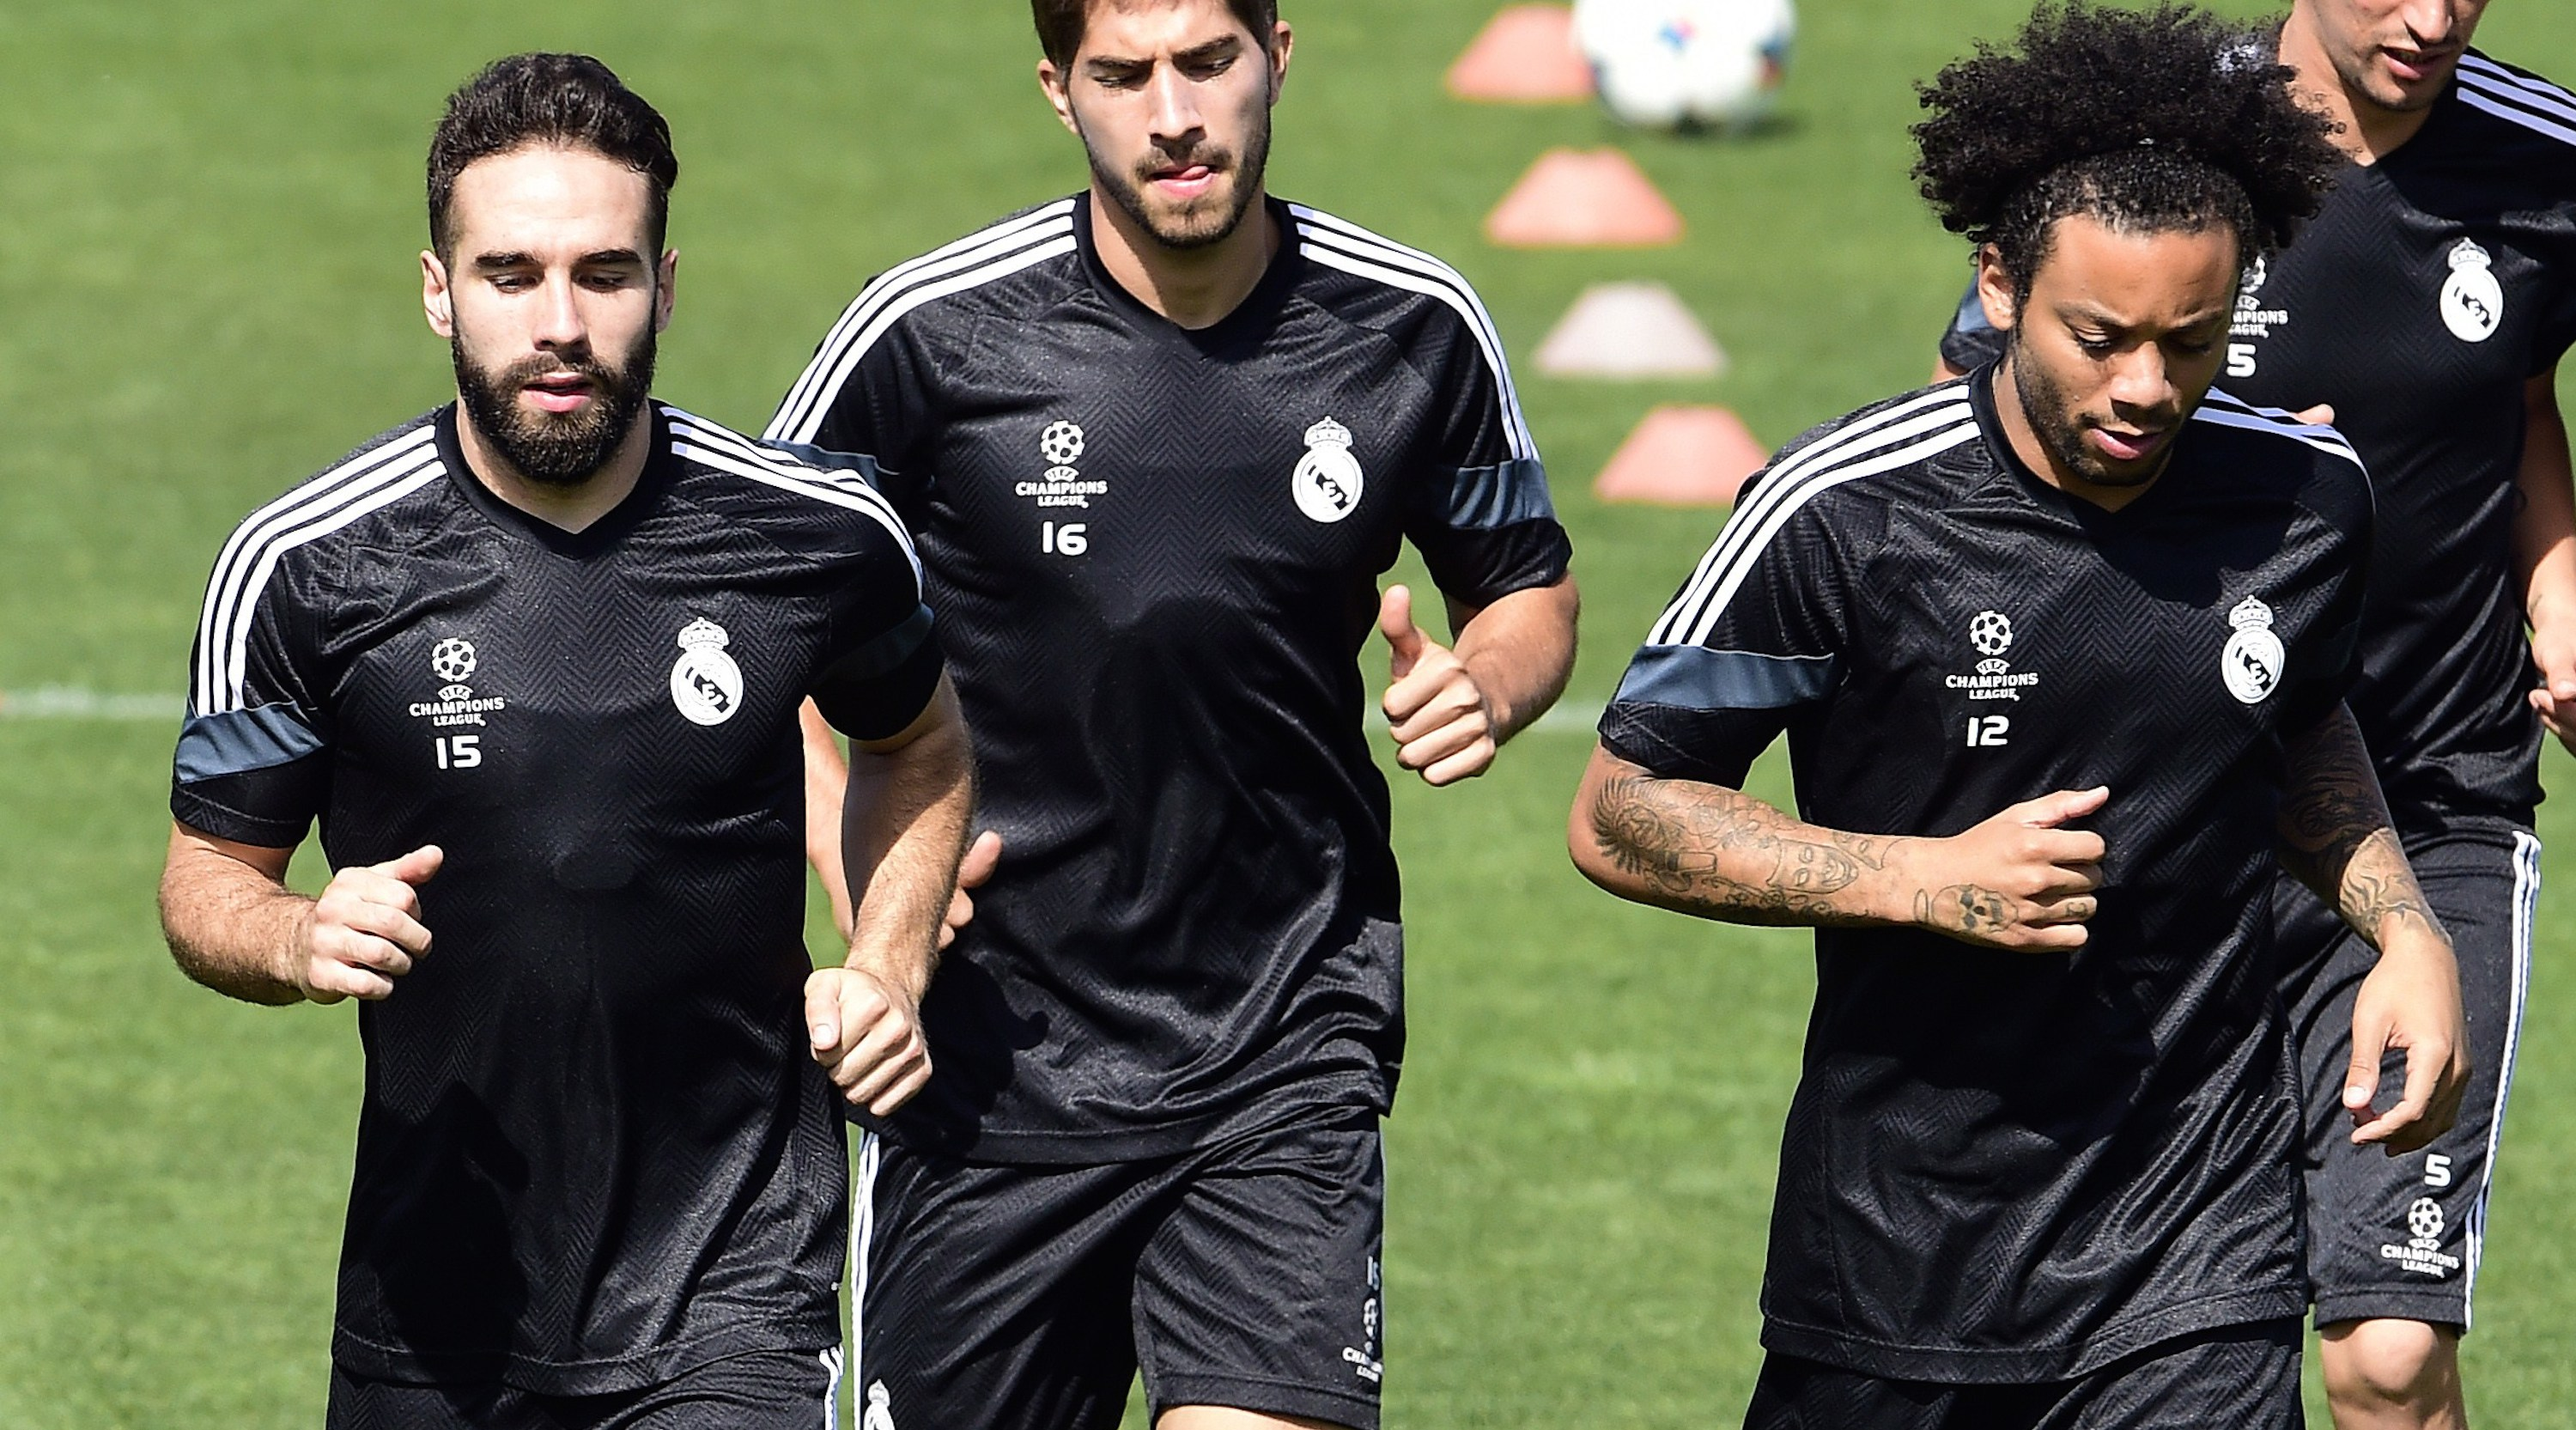 (FromL) Real Madrid's defender Dani Carvajal, Real Madrid's Brazilian midfielder Lucas Silva, Real Madrid's Brazilian defender Marcelo, Real Madrid's Portuguese defender Fabio Coentrao and Real Madrid's Portuguese forward Cristiano Ronaldo jog during a training session at Valdebebas training ground in Madrid on May 12, 2015, on the eve of the UEFA Champions League semi-final second leg football match Real Madrid CF vs Juventus. AFP PHOTO/ GERARD JULIEN (Photo credit should read GERARD JULIEN/AFP/Getty Images)